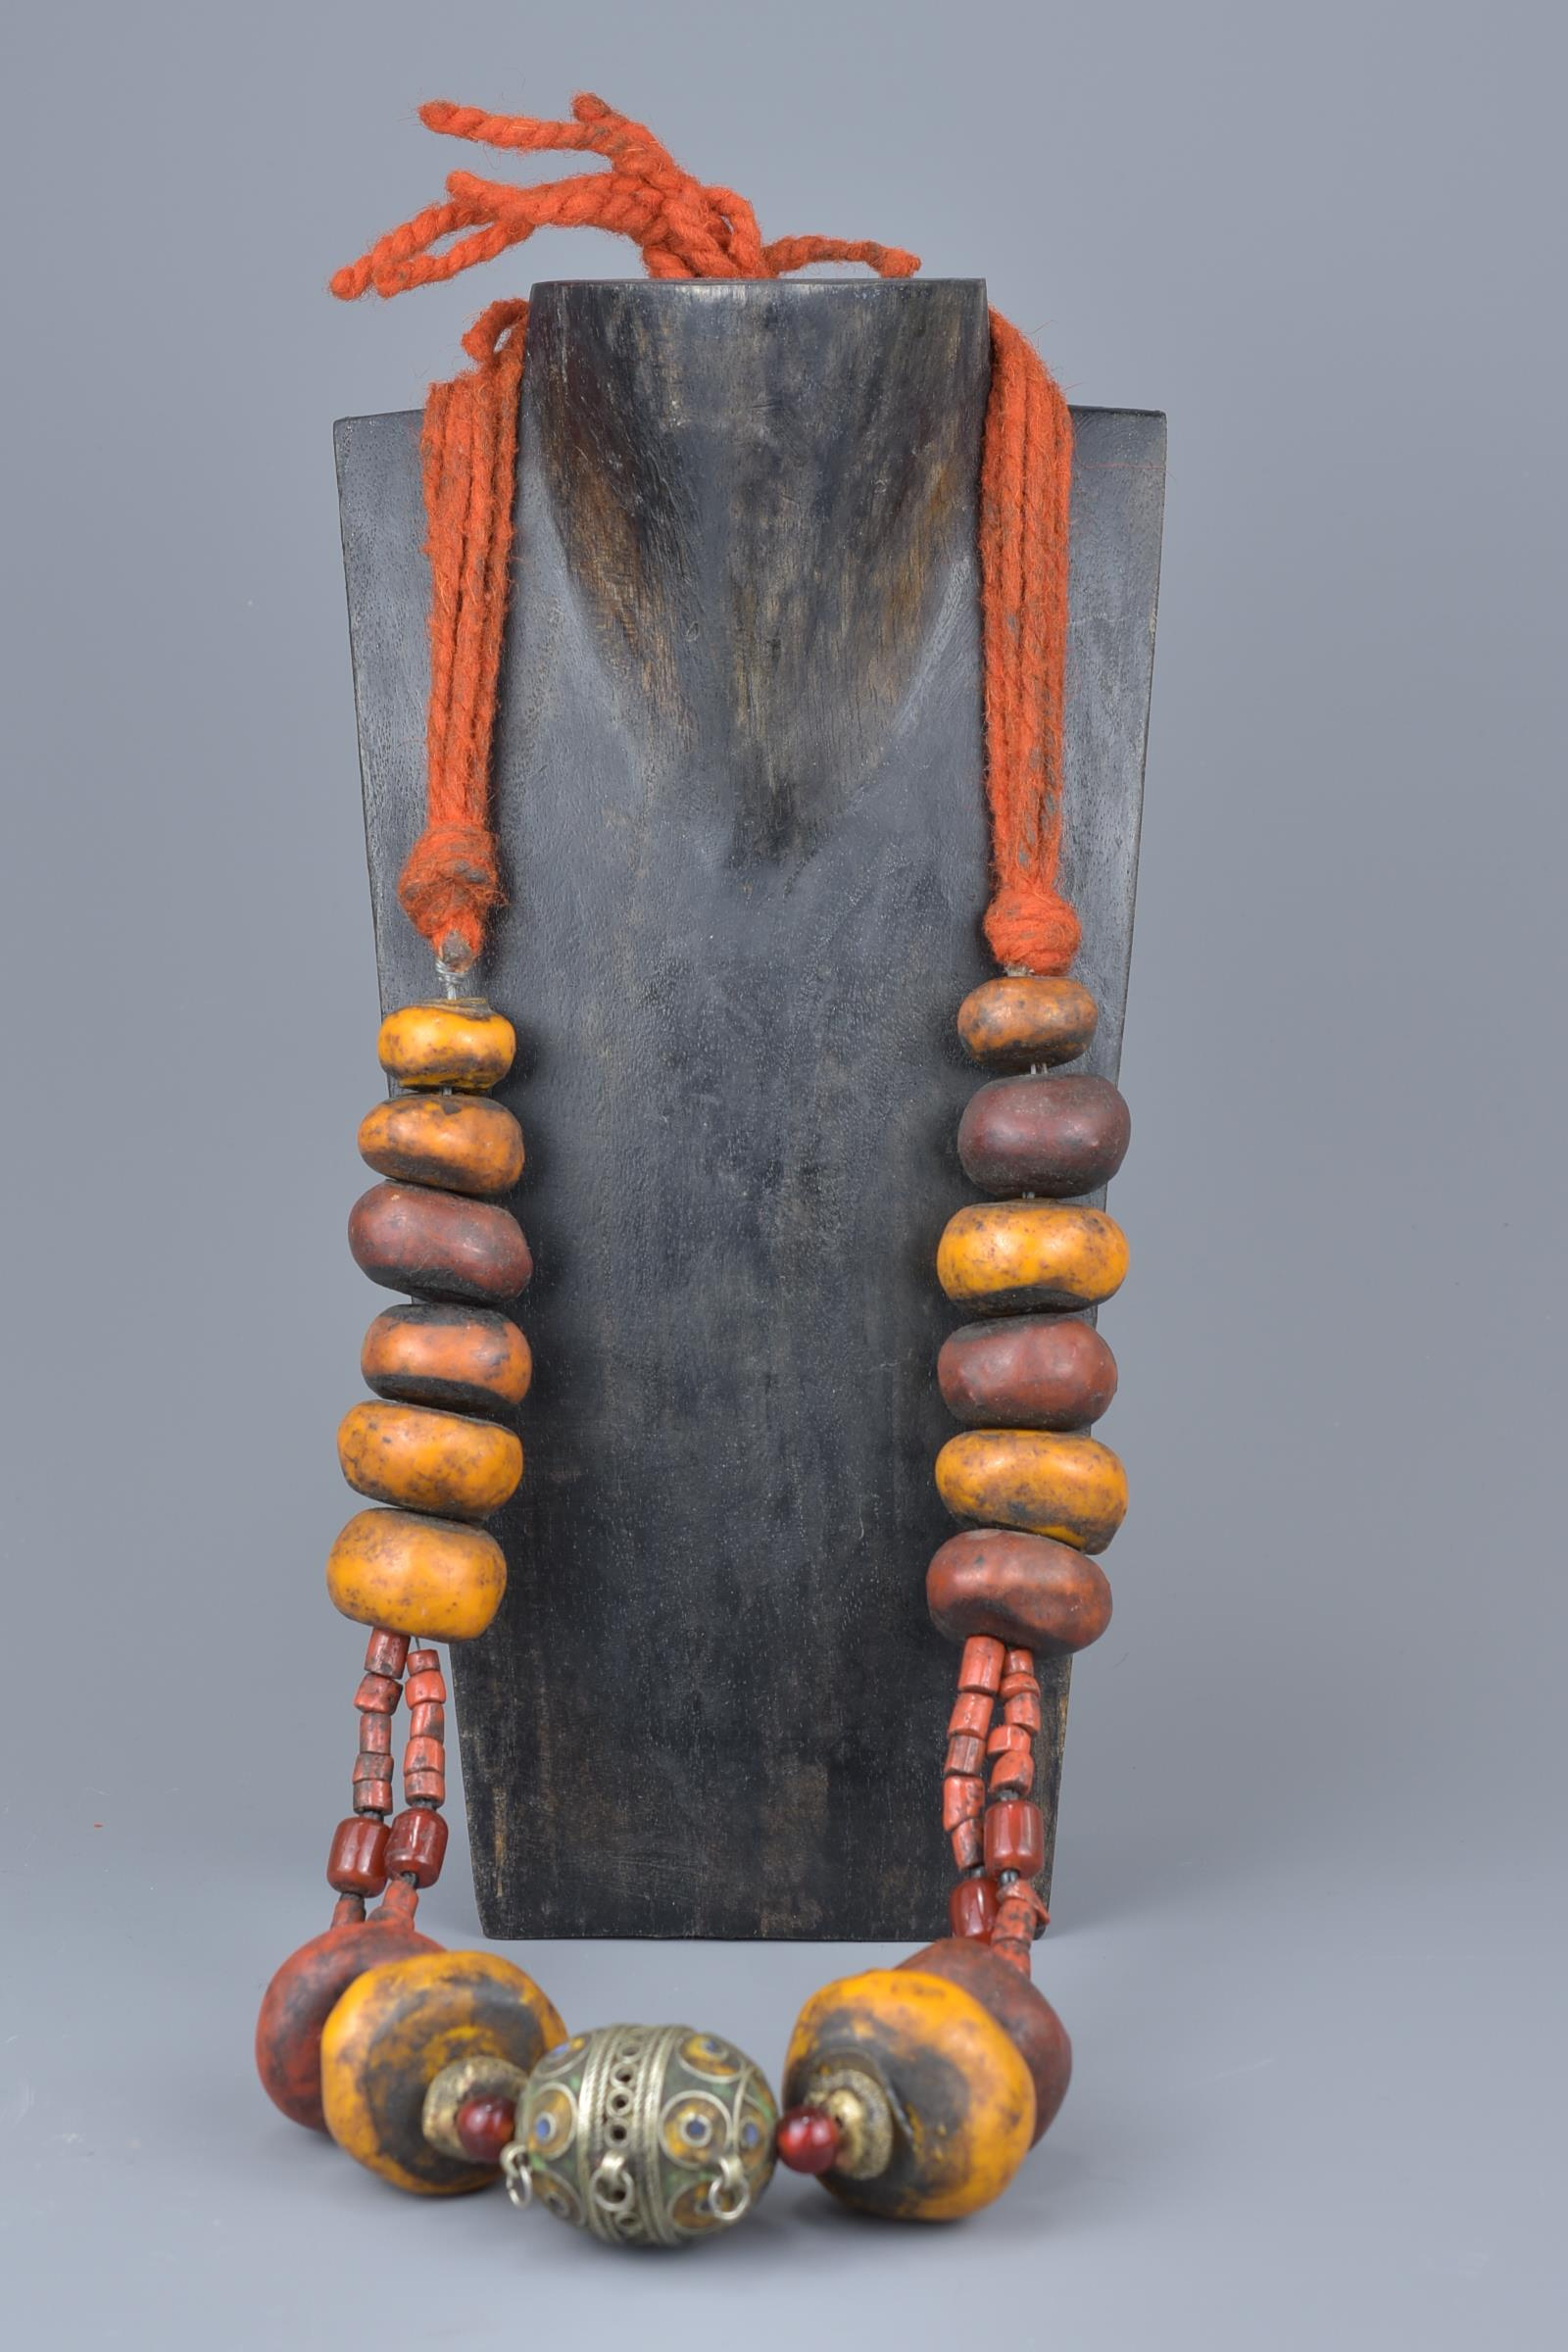 Lot 30 - A large Moroccan amber resin and coral bead necklace with enamel silver metal pendant.